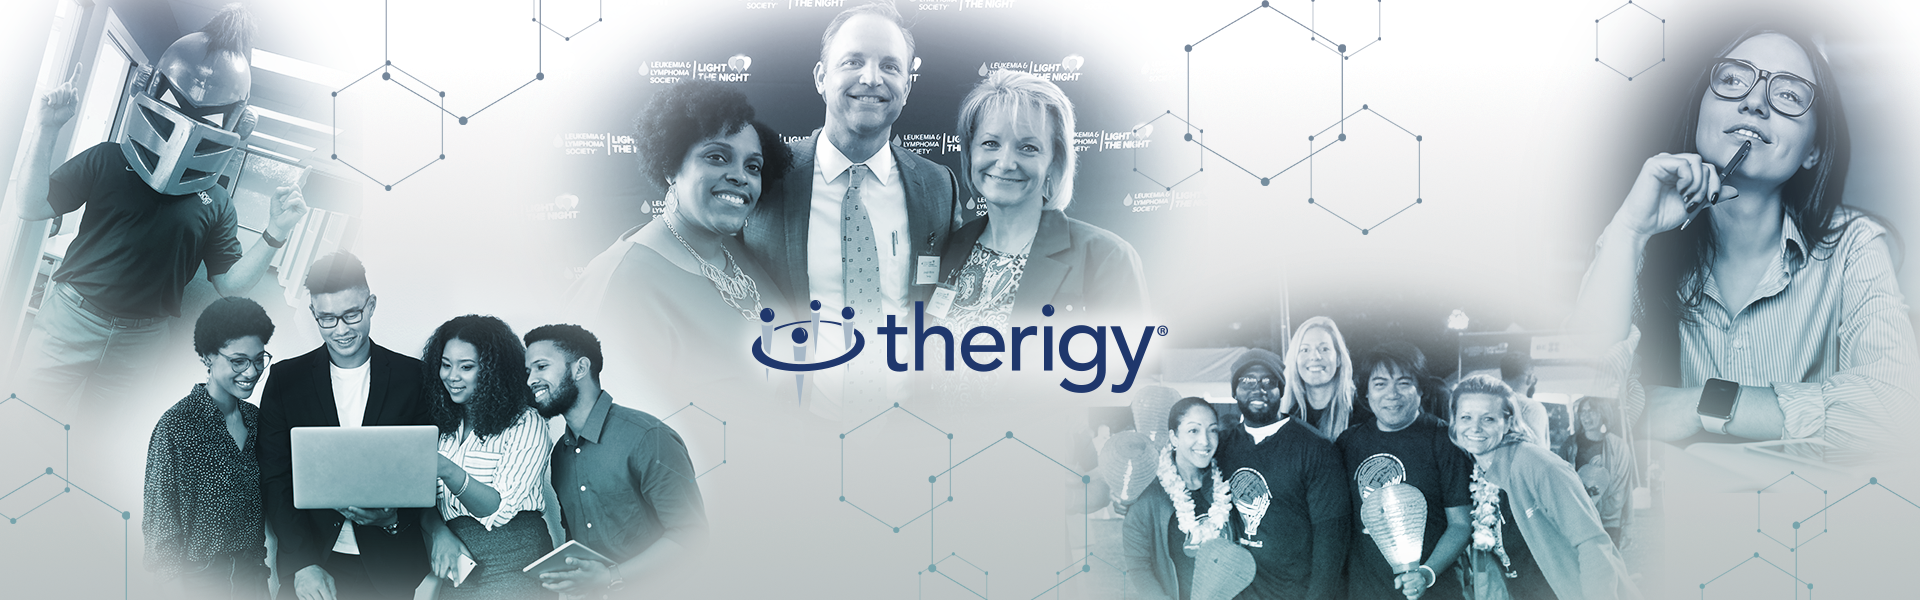 team therigy banner